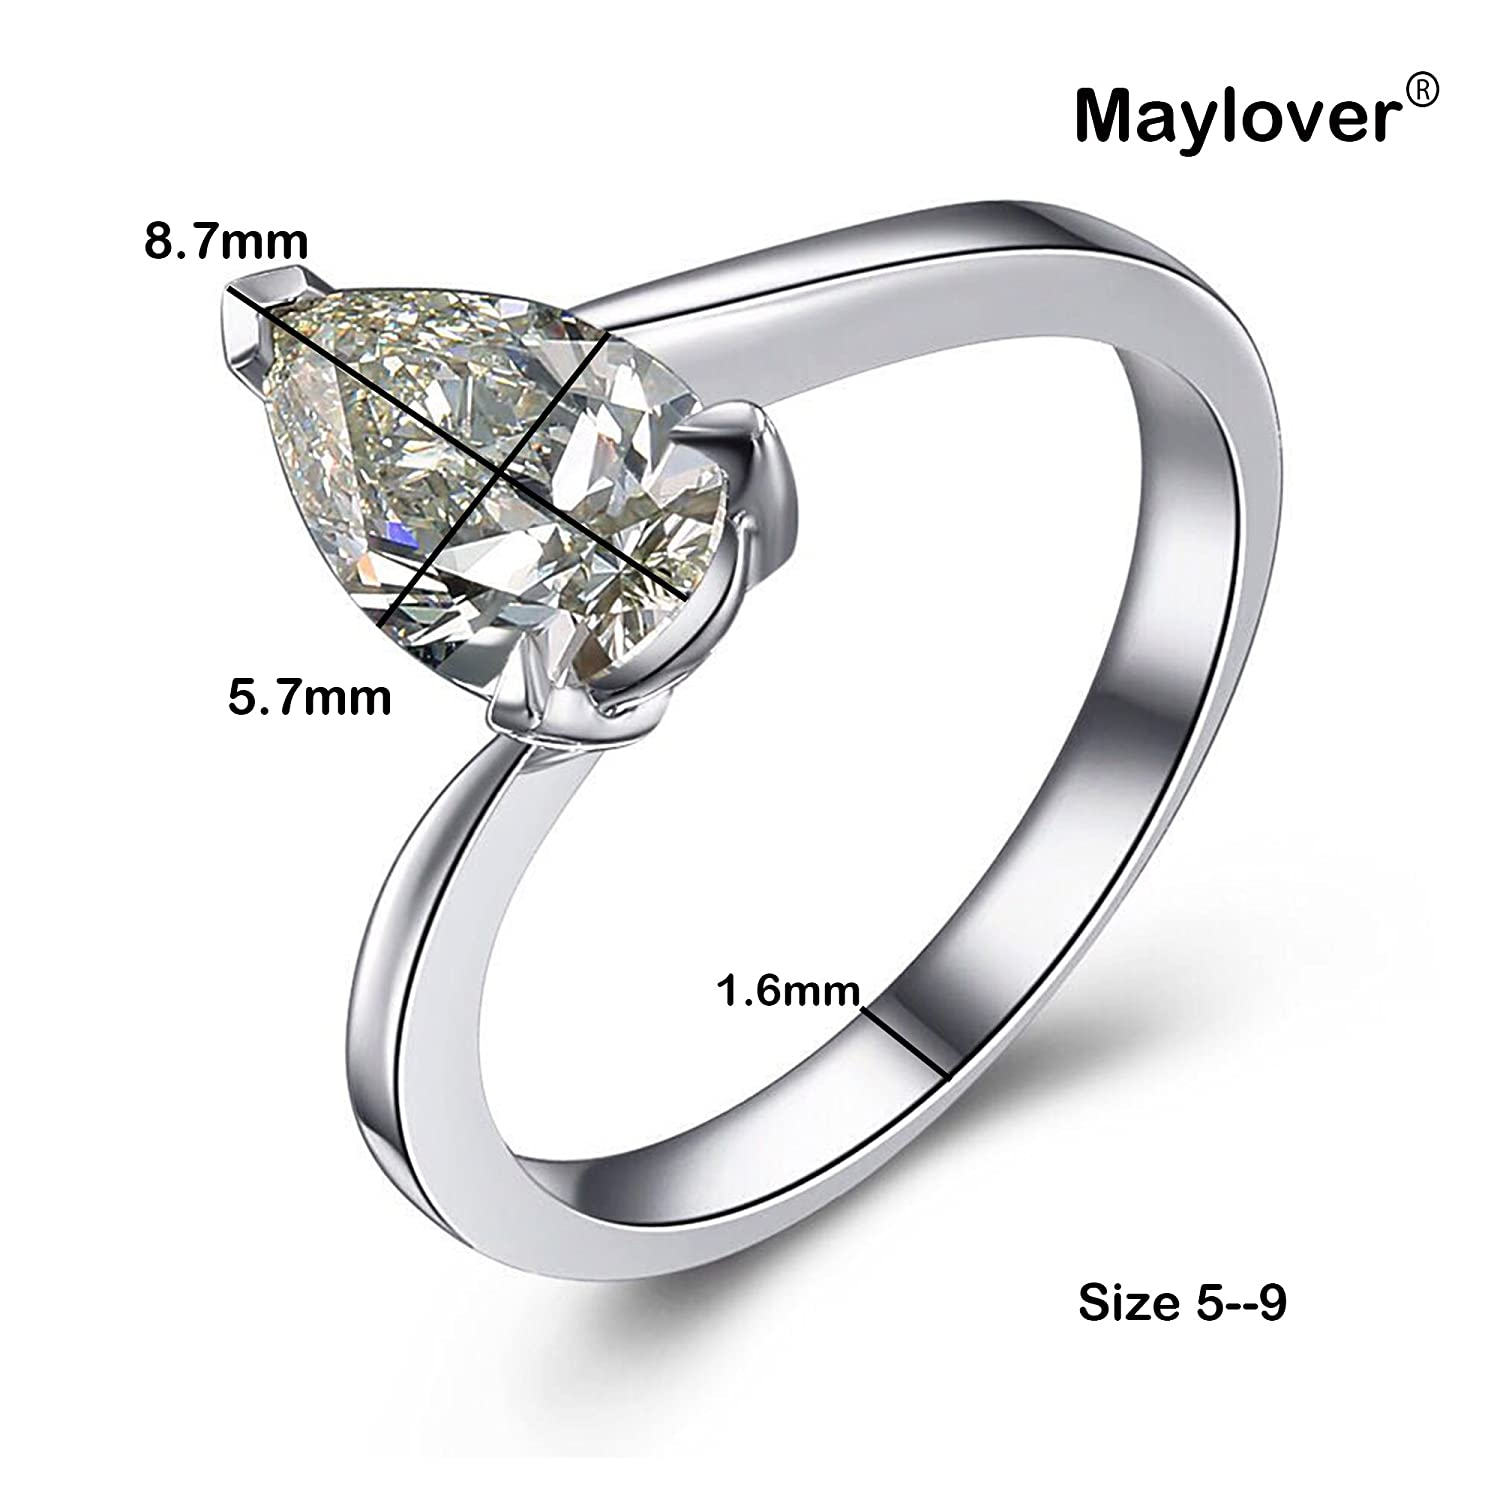 084cc48ac8a41 Maylover Promise Ring for 14k White Gold Plated s925 Sterling Silver 3  Prong AAA Pear Shape Cubic Zirconia Crystal Wedding Band Ring for Women,  Size ...